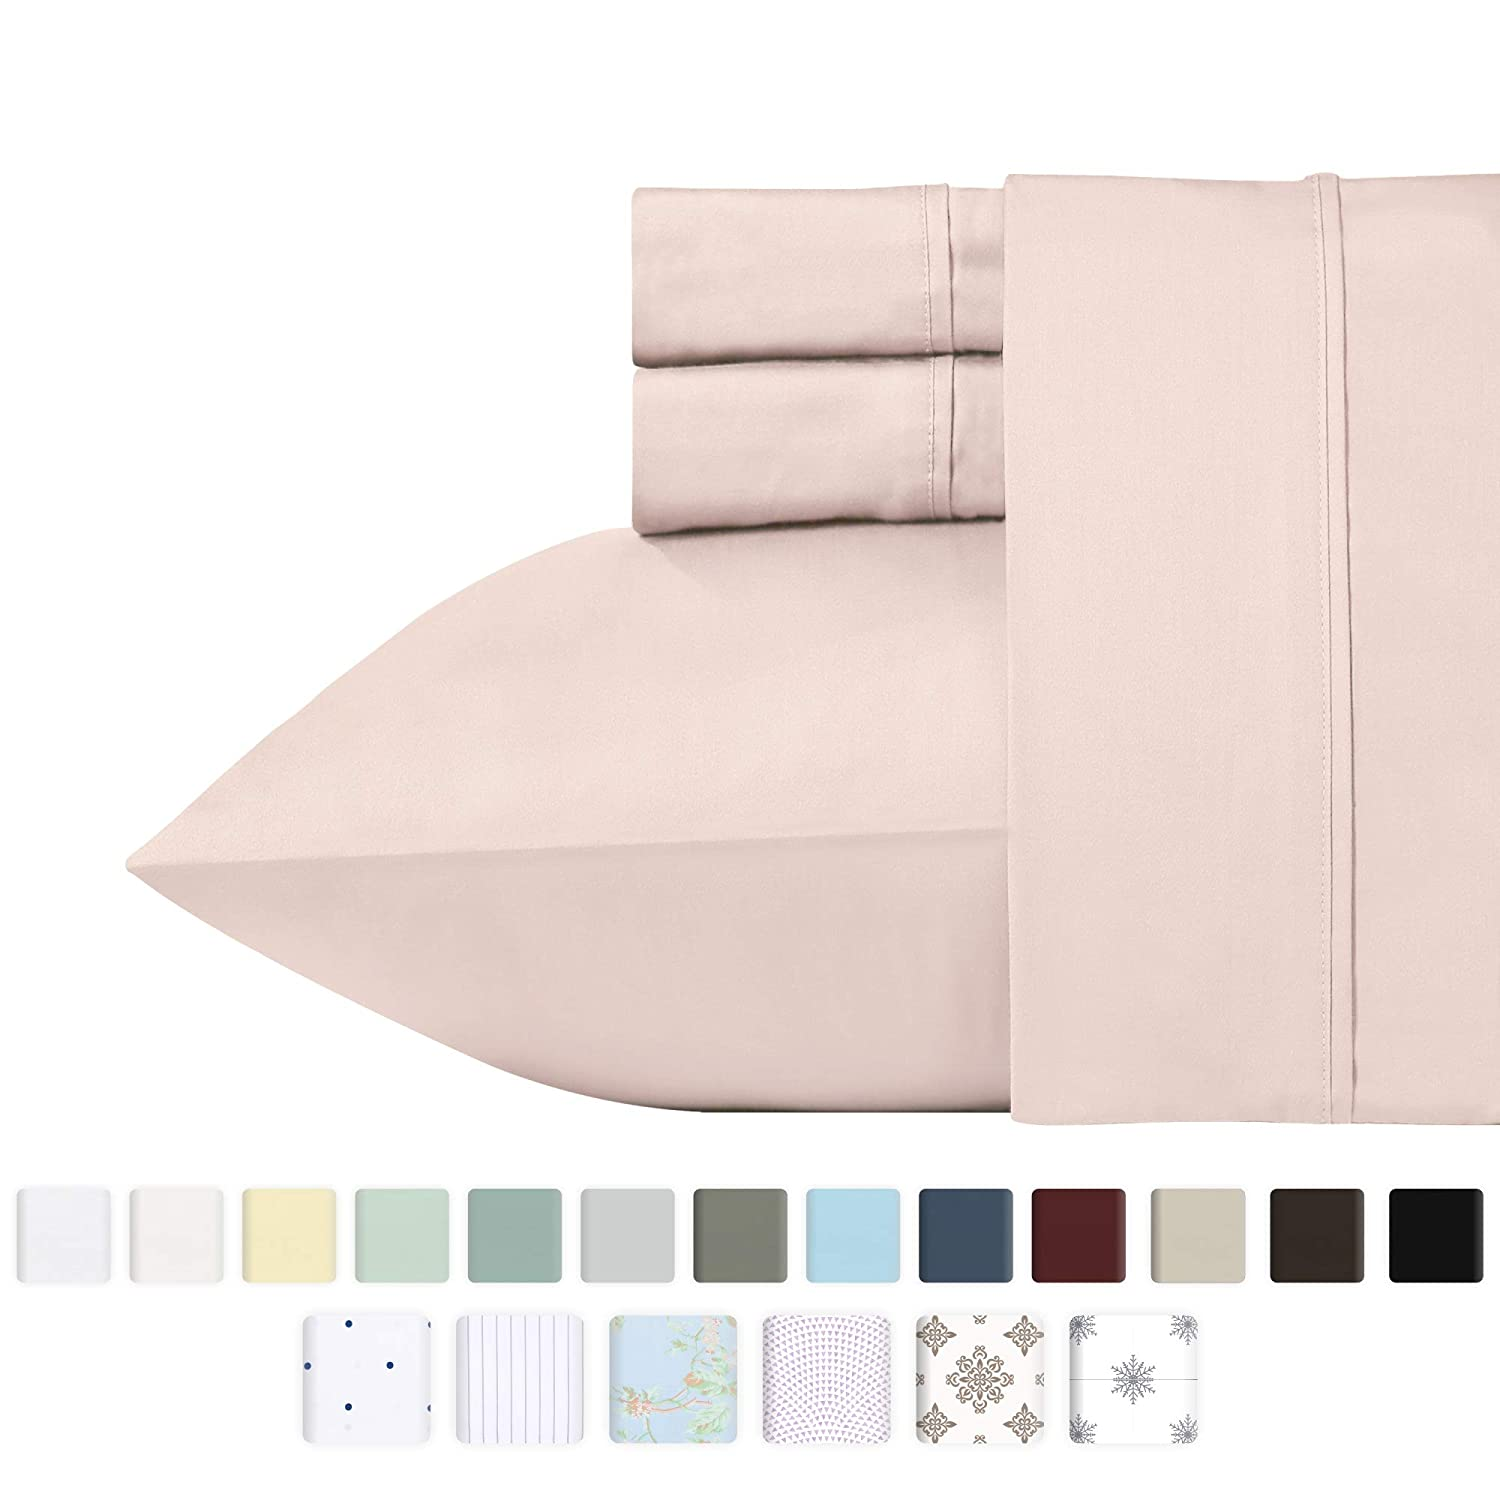 Best Luxury 400-Thread-Count 100% Cotton Sheet Set, Blush Queen Sheets, 4-Piece Long-staple Combed Pure Cotton Bedsheet For Bed, Soft & Silky Sateen Sheets Fits Mattress Upto 18'' Deep Pocket